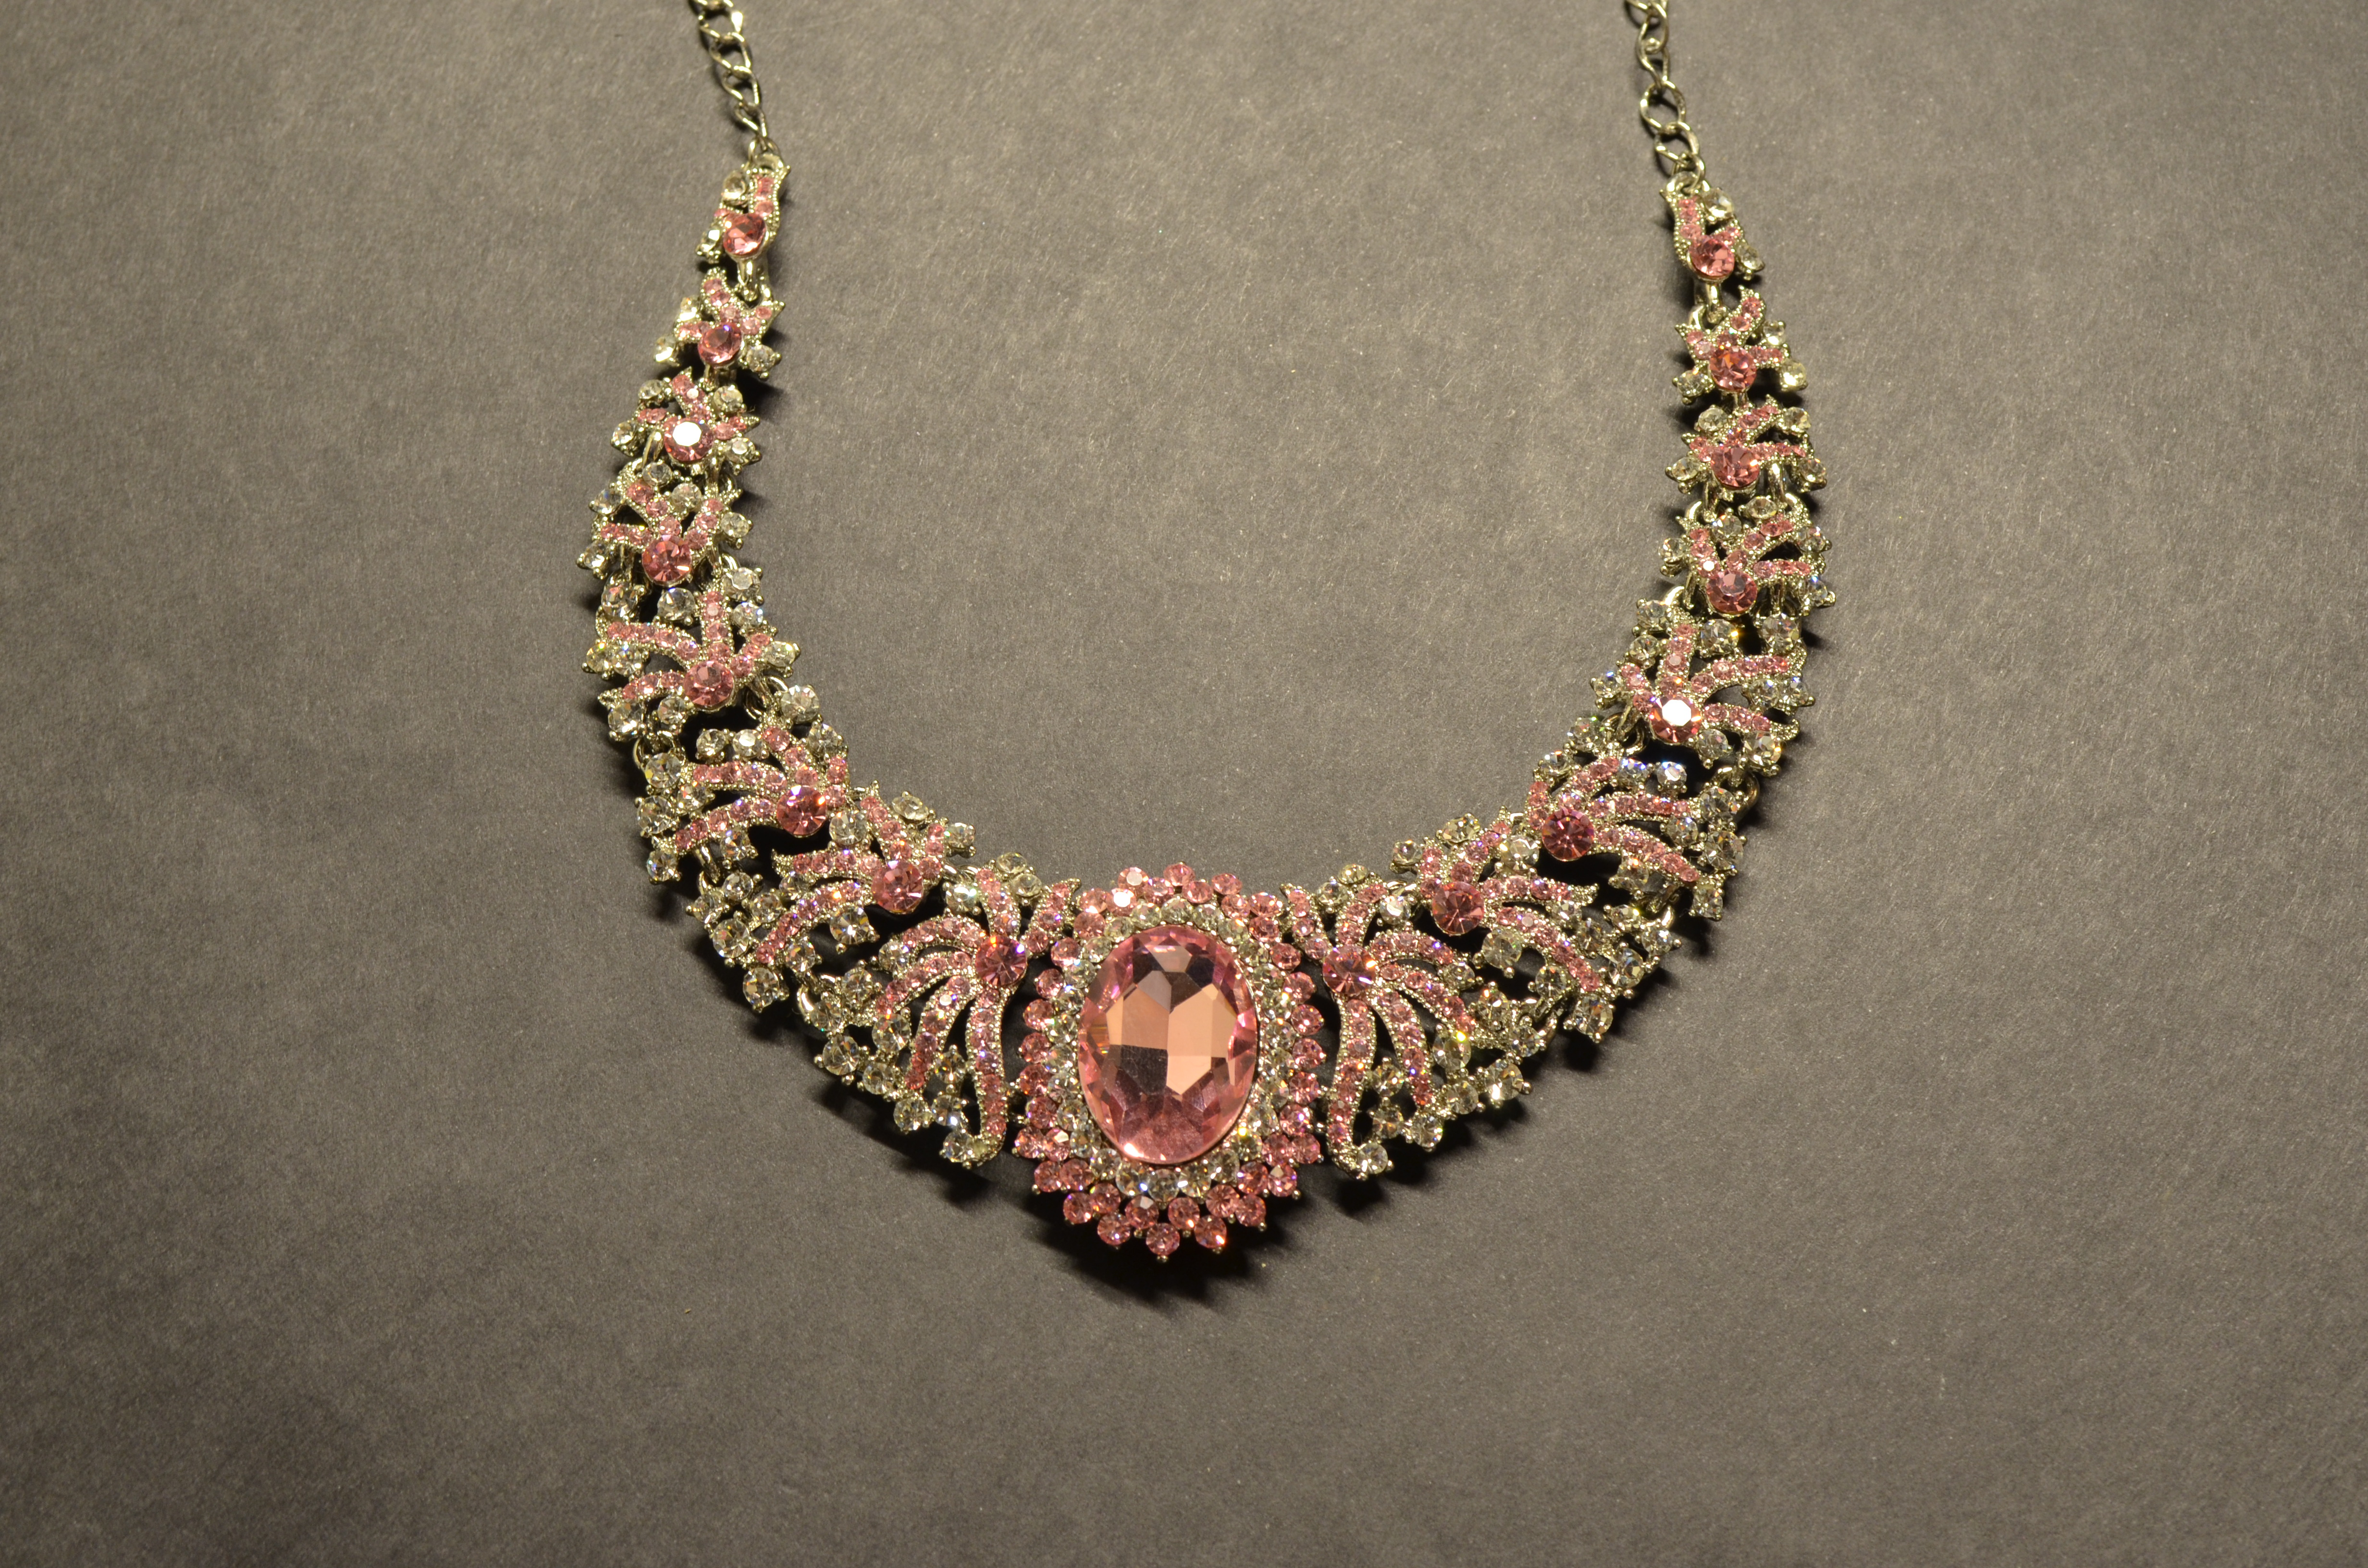 Beautiful Necklace Jewelry : Public Domain Pictures